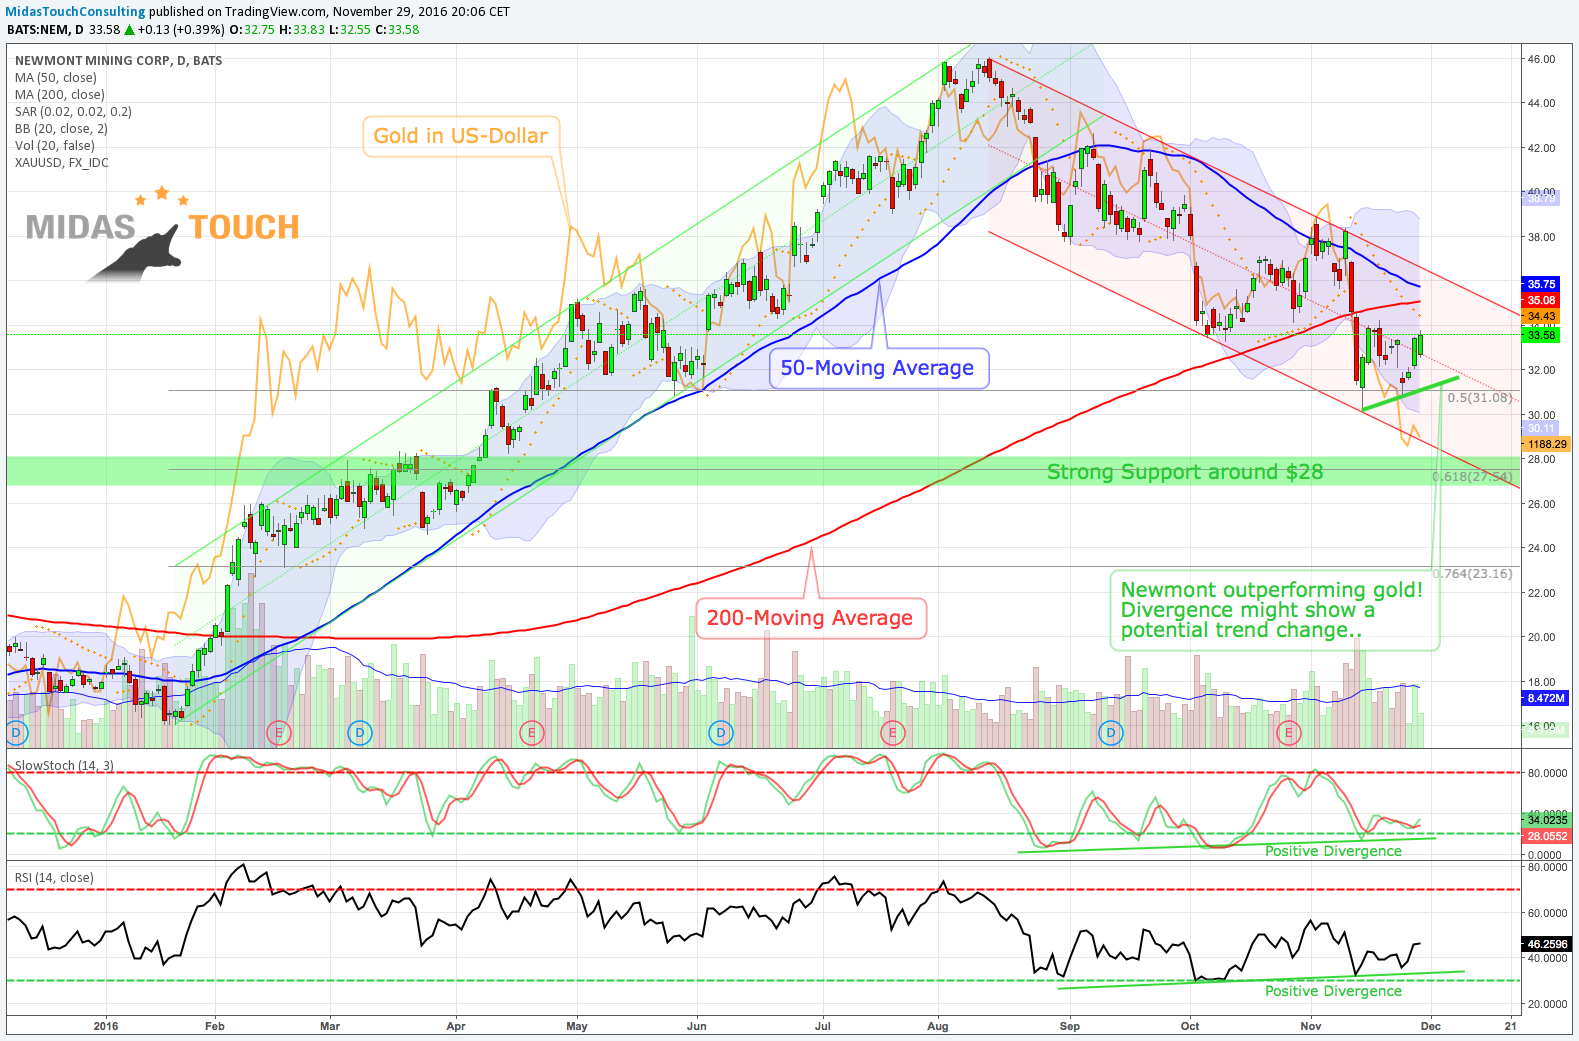 Well known Mover to Watch- Newmont Mining Corporation's (NEM)